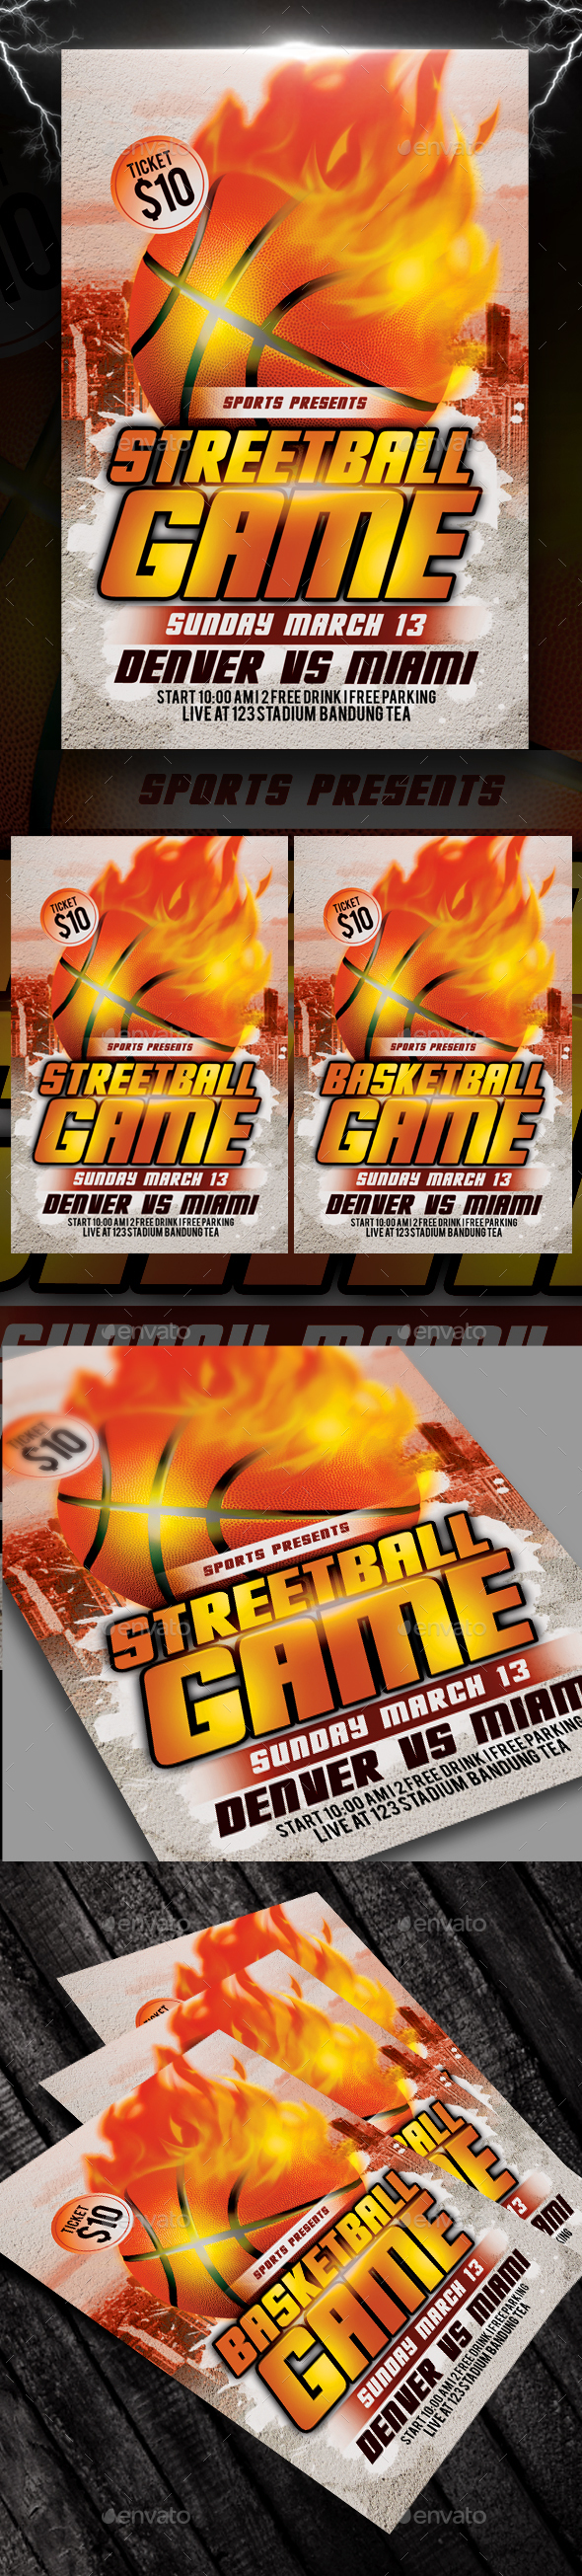 Streetball or Basketball Game Flyer - Sports Events